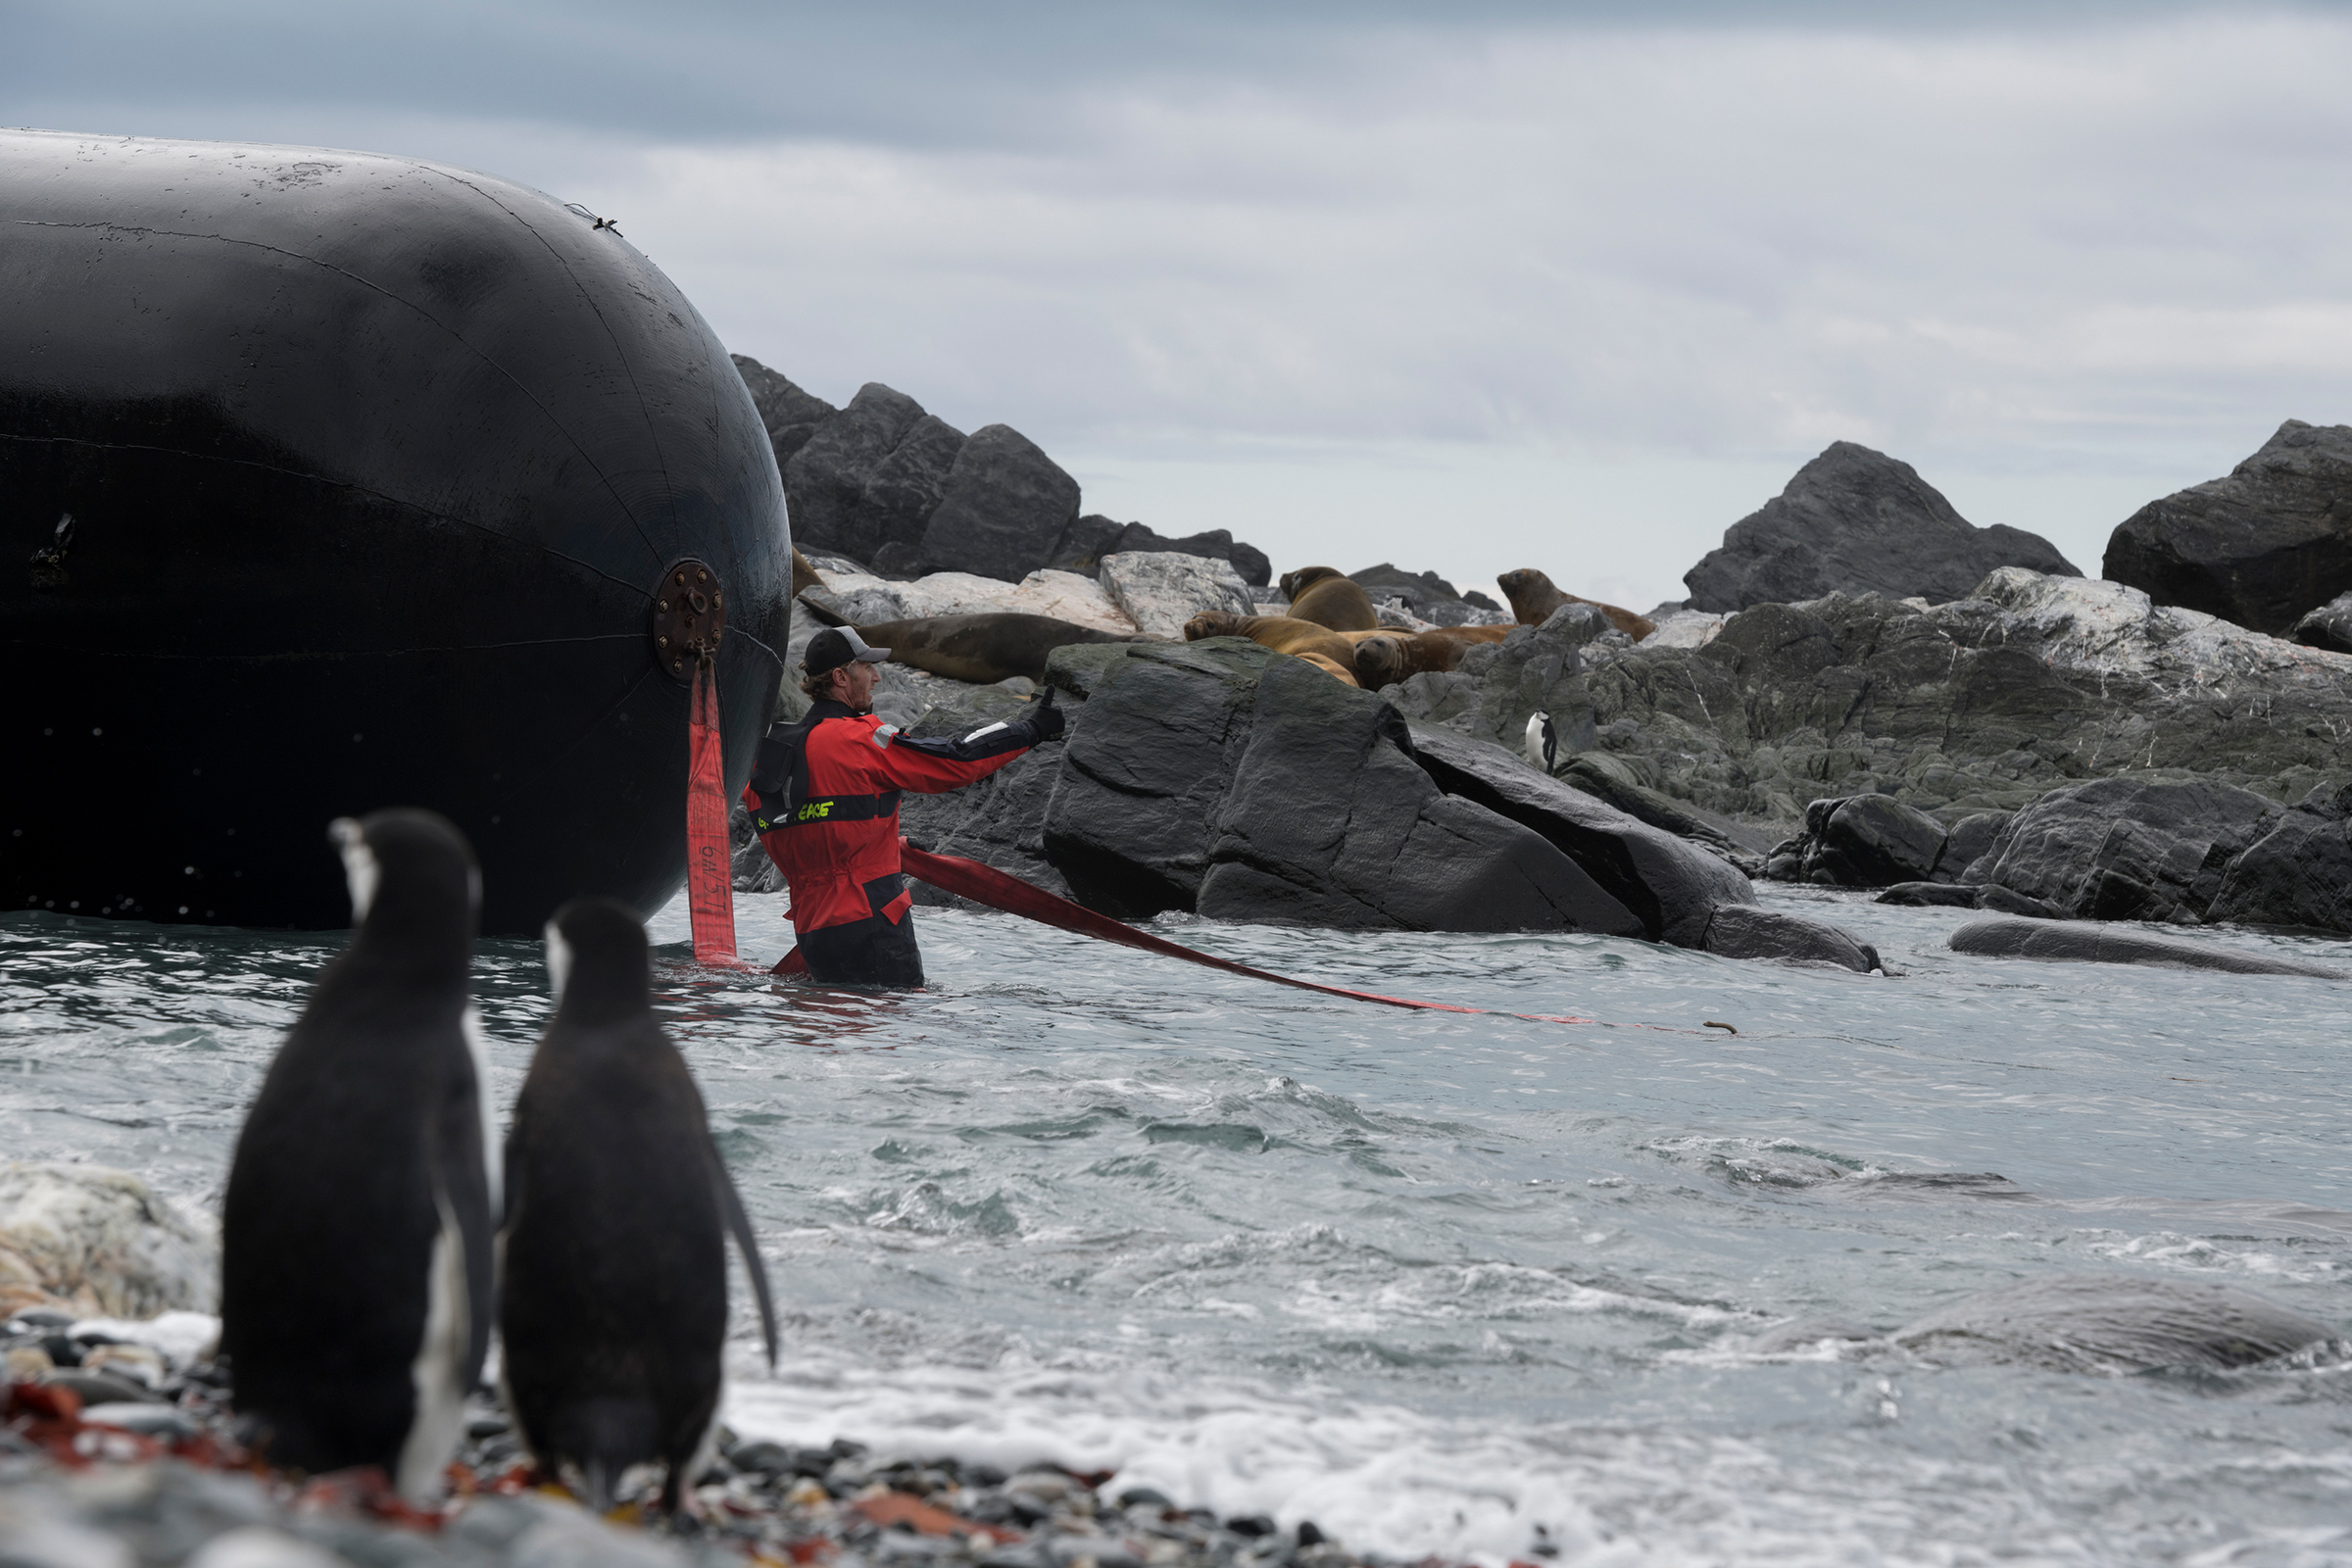 A Greenpeace crew removes a large plastic boat fender left on a beach in Antarctica